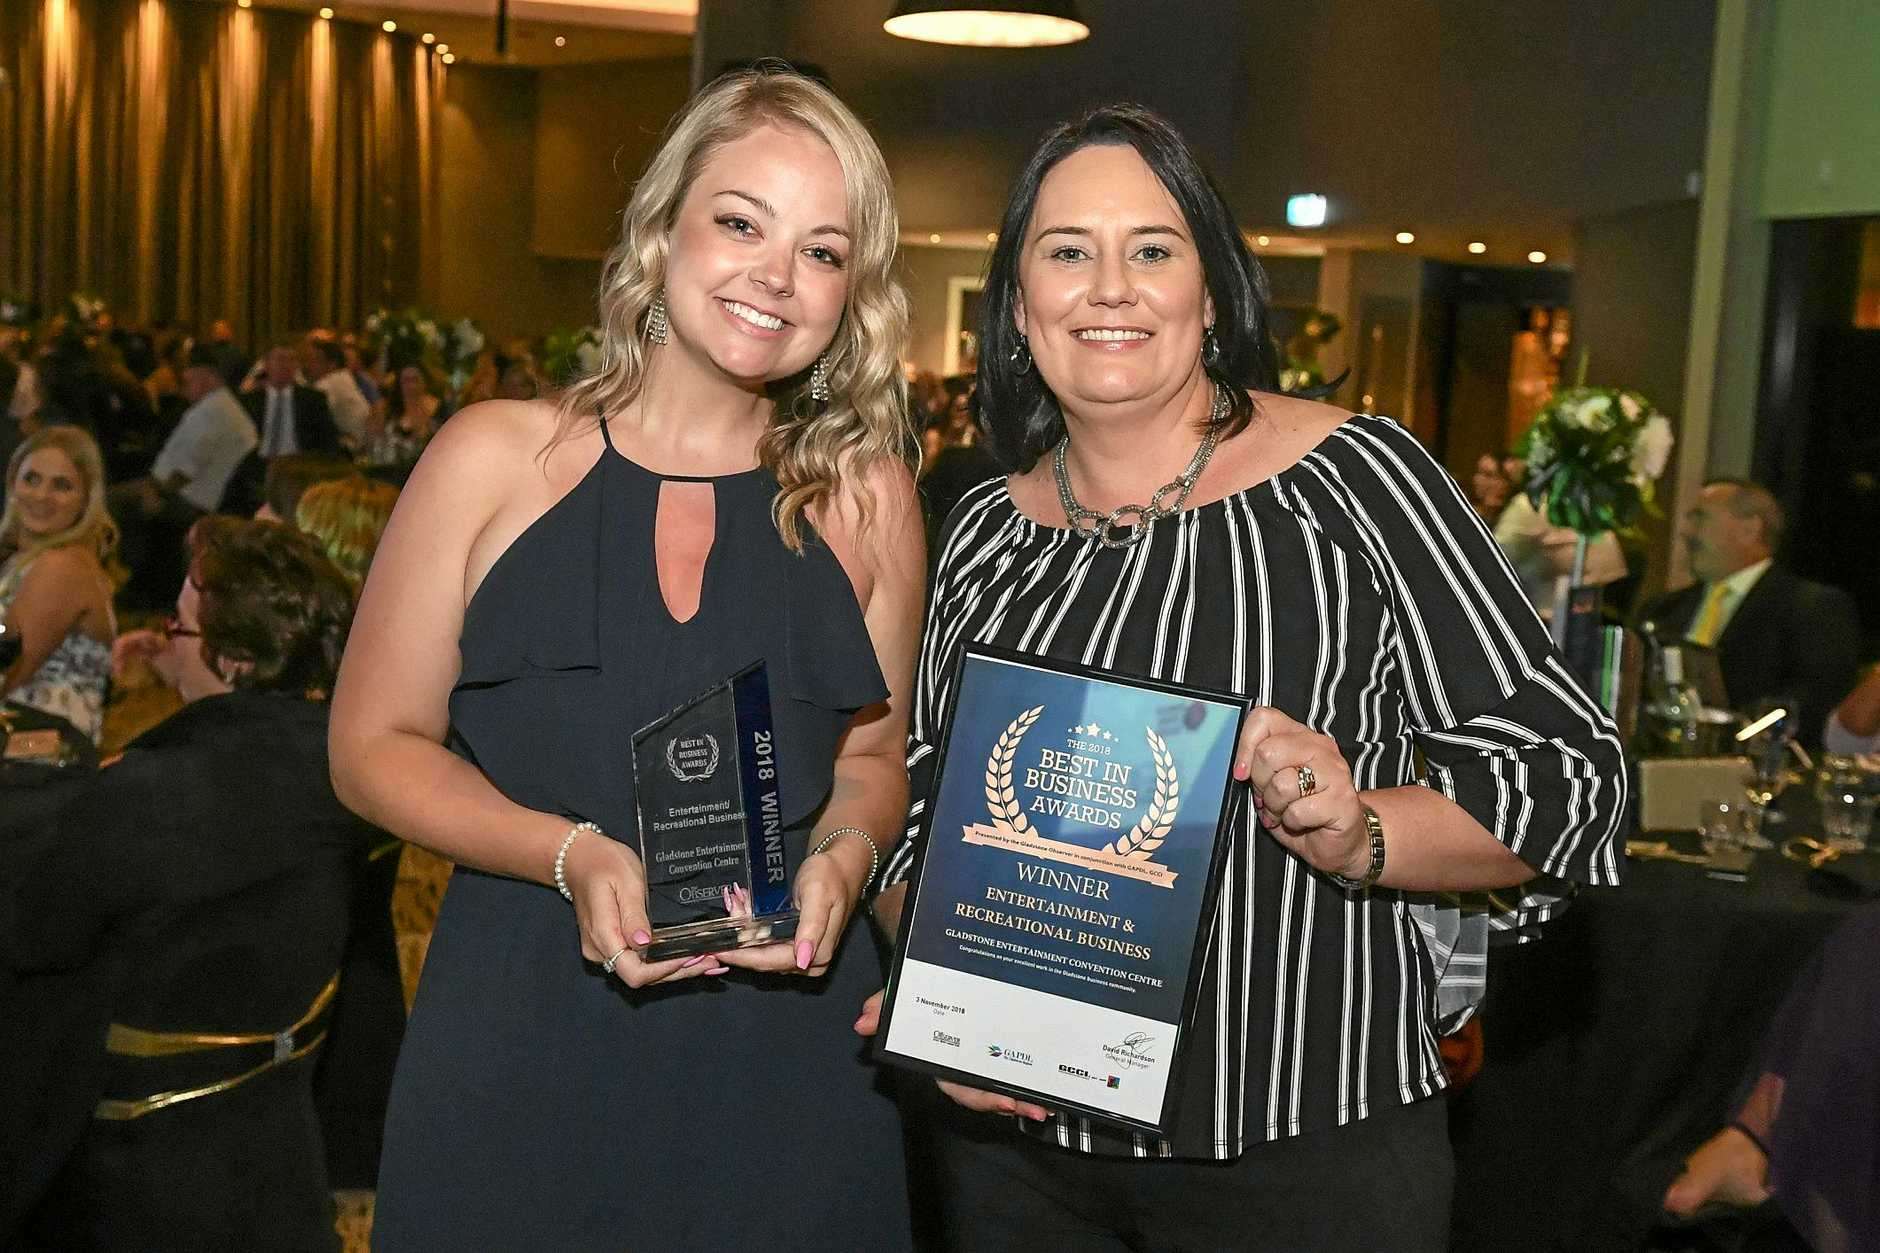 ON THE UP: Gladstone Entertainment Convention Centre venue leader Kim Roberts and Gladstone Regional Council acting general manager of strategy and transformation Carly Quinn at the 2018 Best in Business Awards.